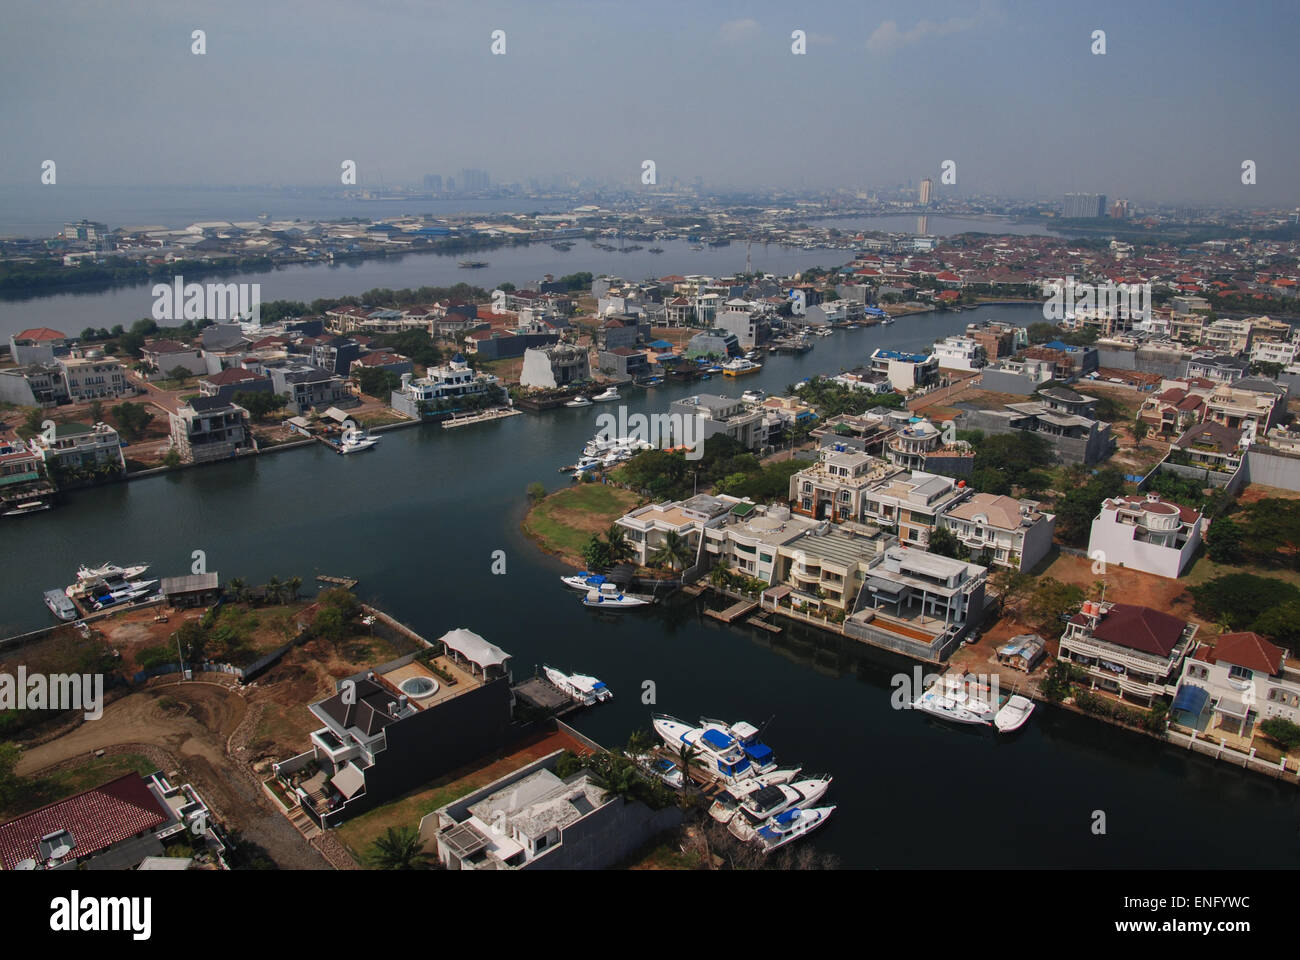 Aerial landscape of Jakarta coastal area, seen from one of the residential towers at Pantai Mutiara in Pluit, Jakarta, Indonesia. Stock Photo